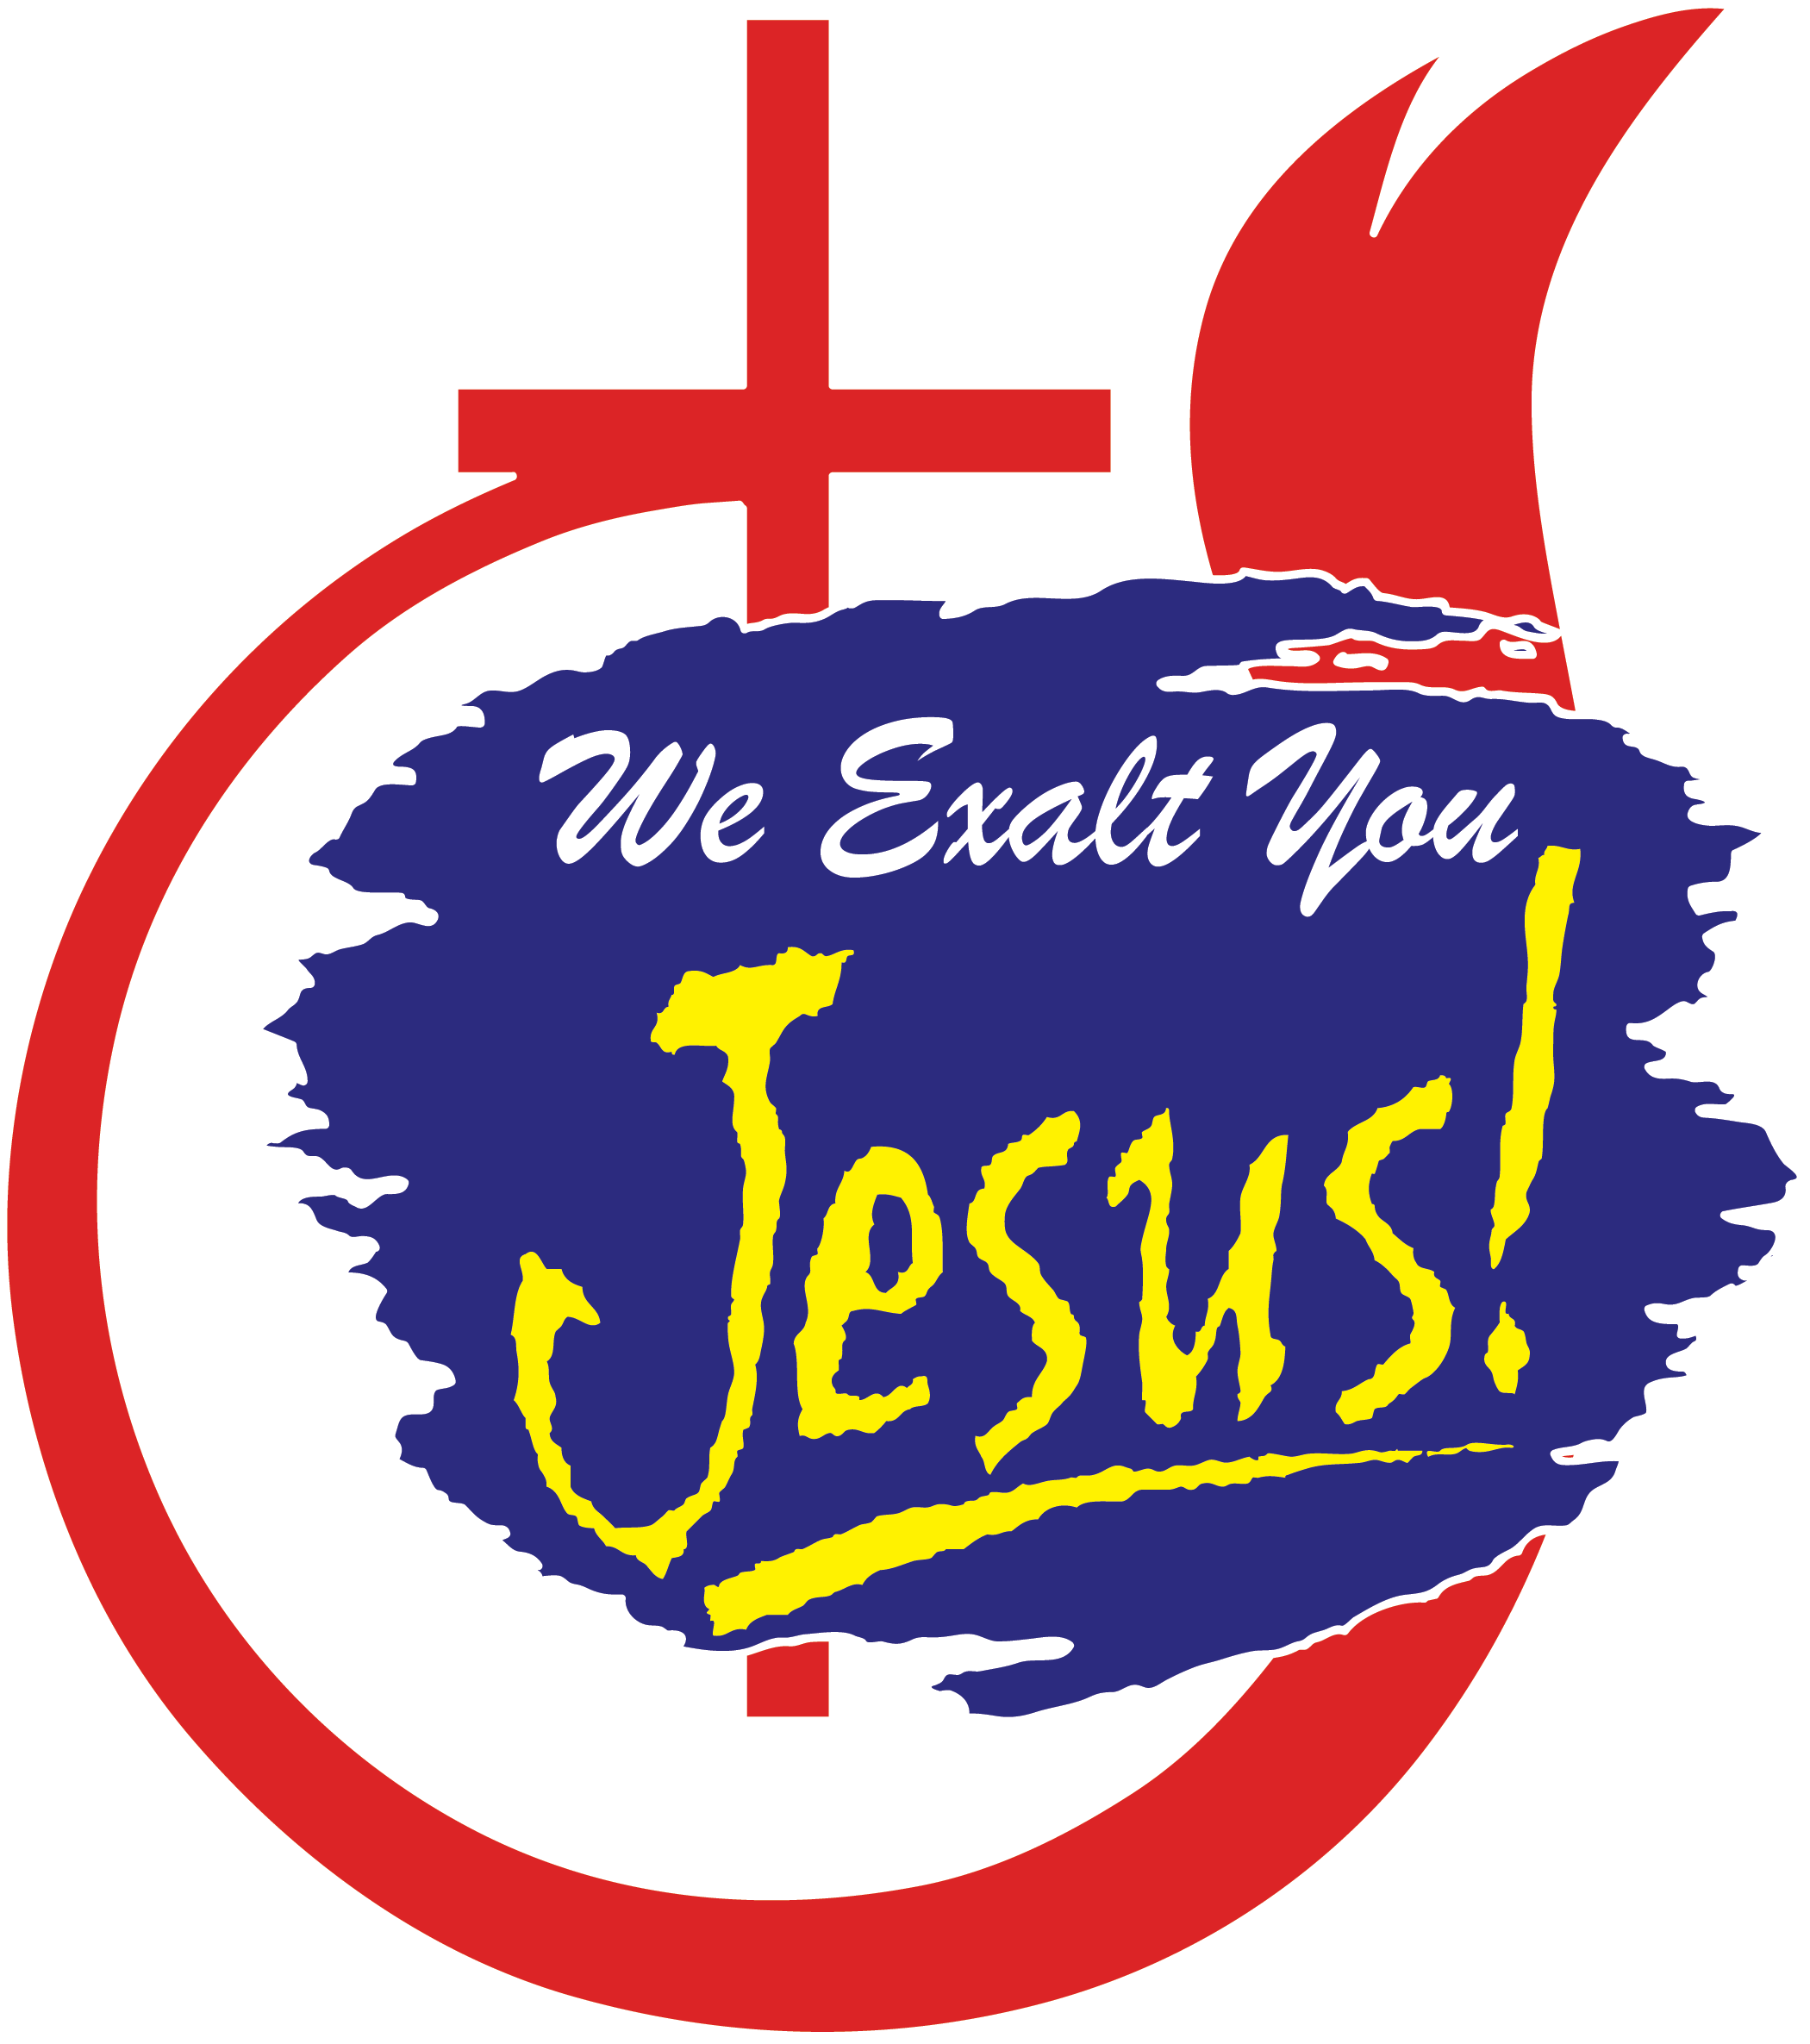 Church of god logo png. Media resources cog philippines